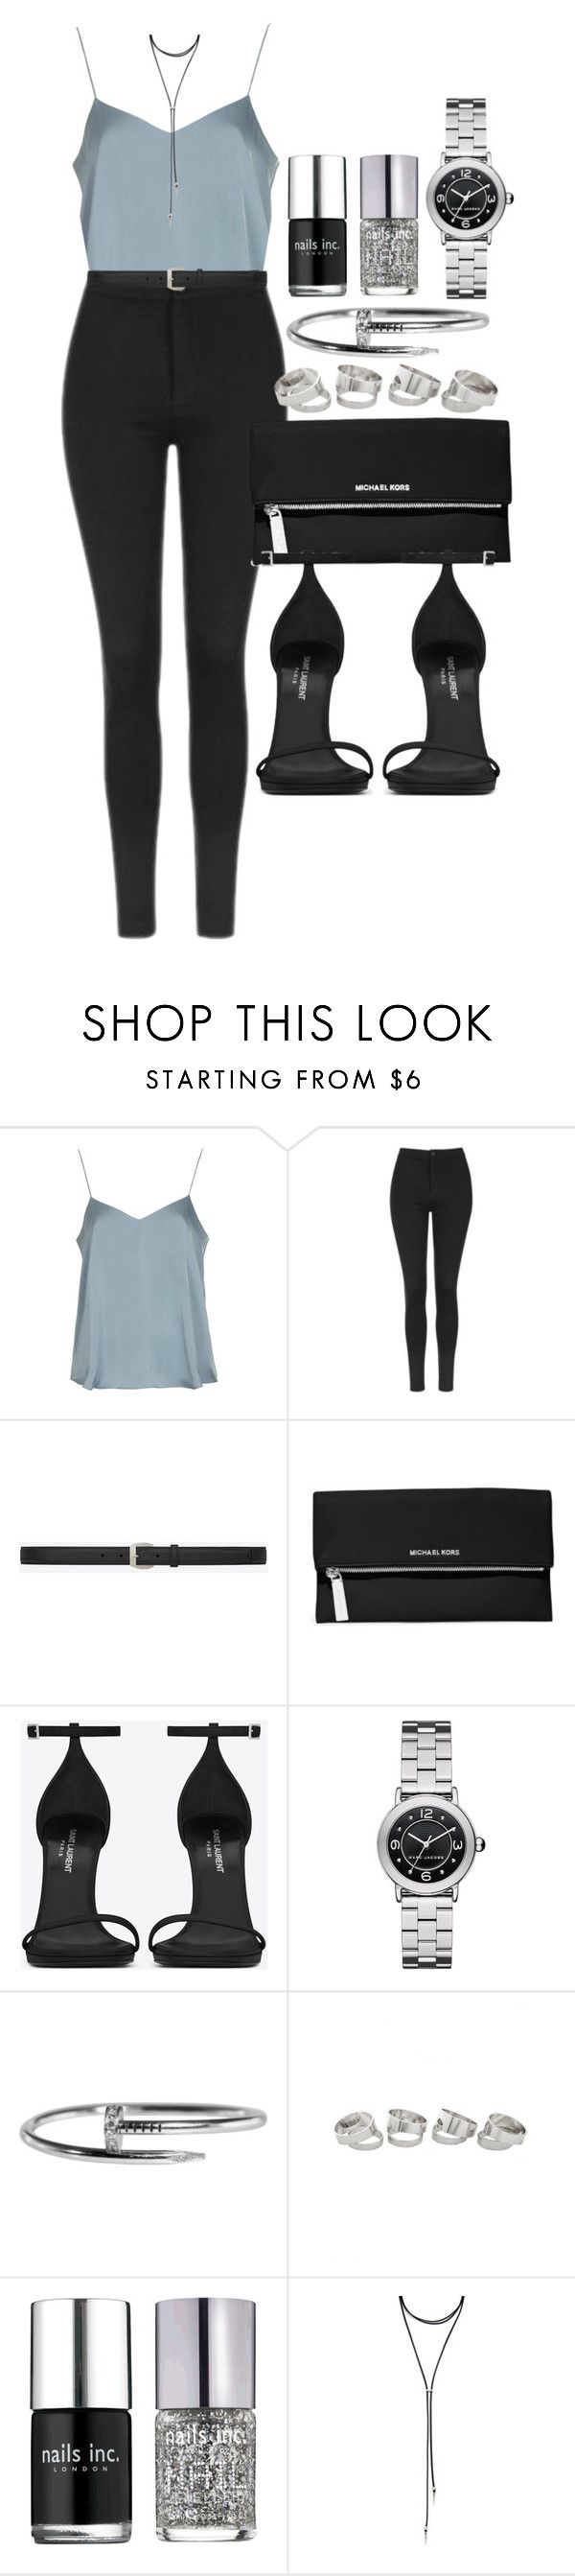 """Style #11114"" by vany-alvarado ❤ liked on Polyvore featuring Topshop, Yves Saint Laurent, MICHAEL Michael Kors, Marc Jacobs, Nails Inc. and Forever 21"